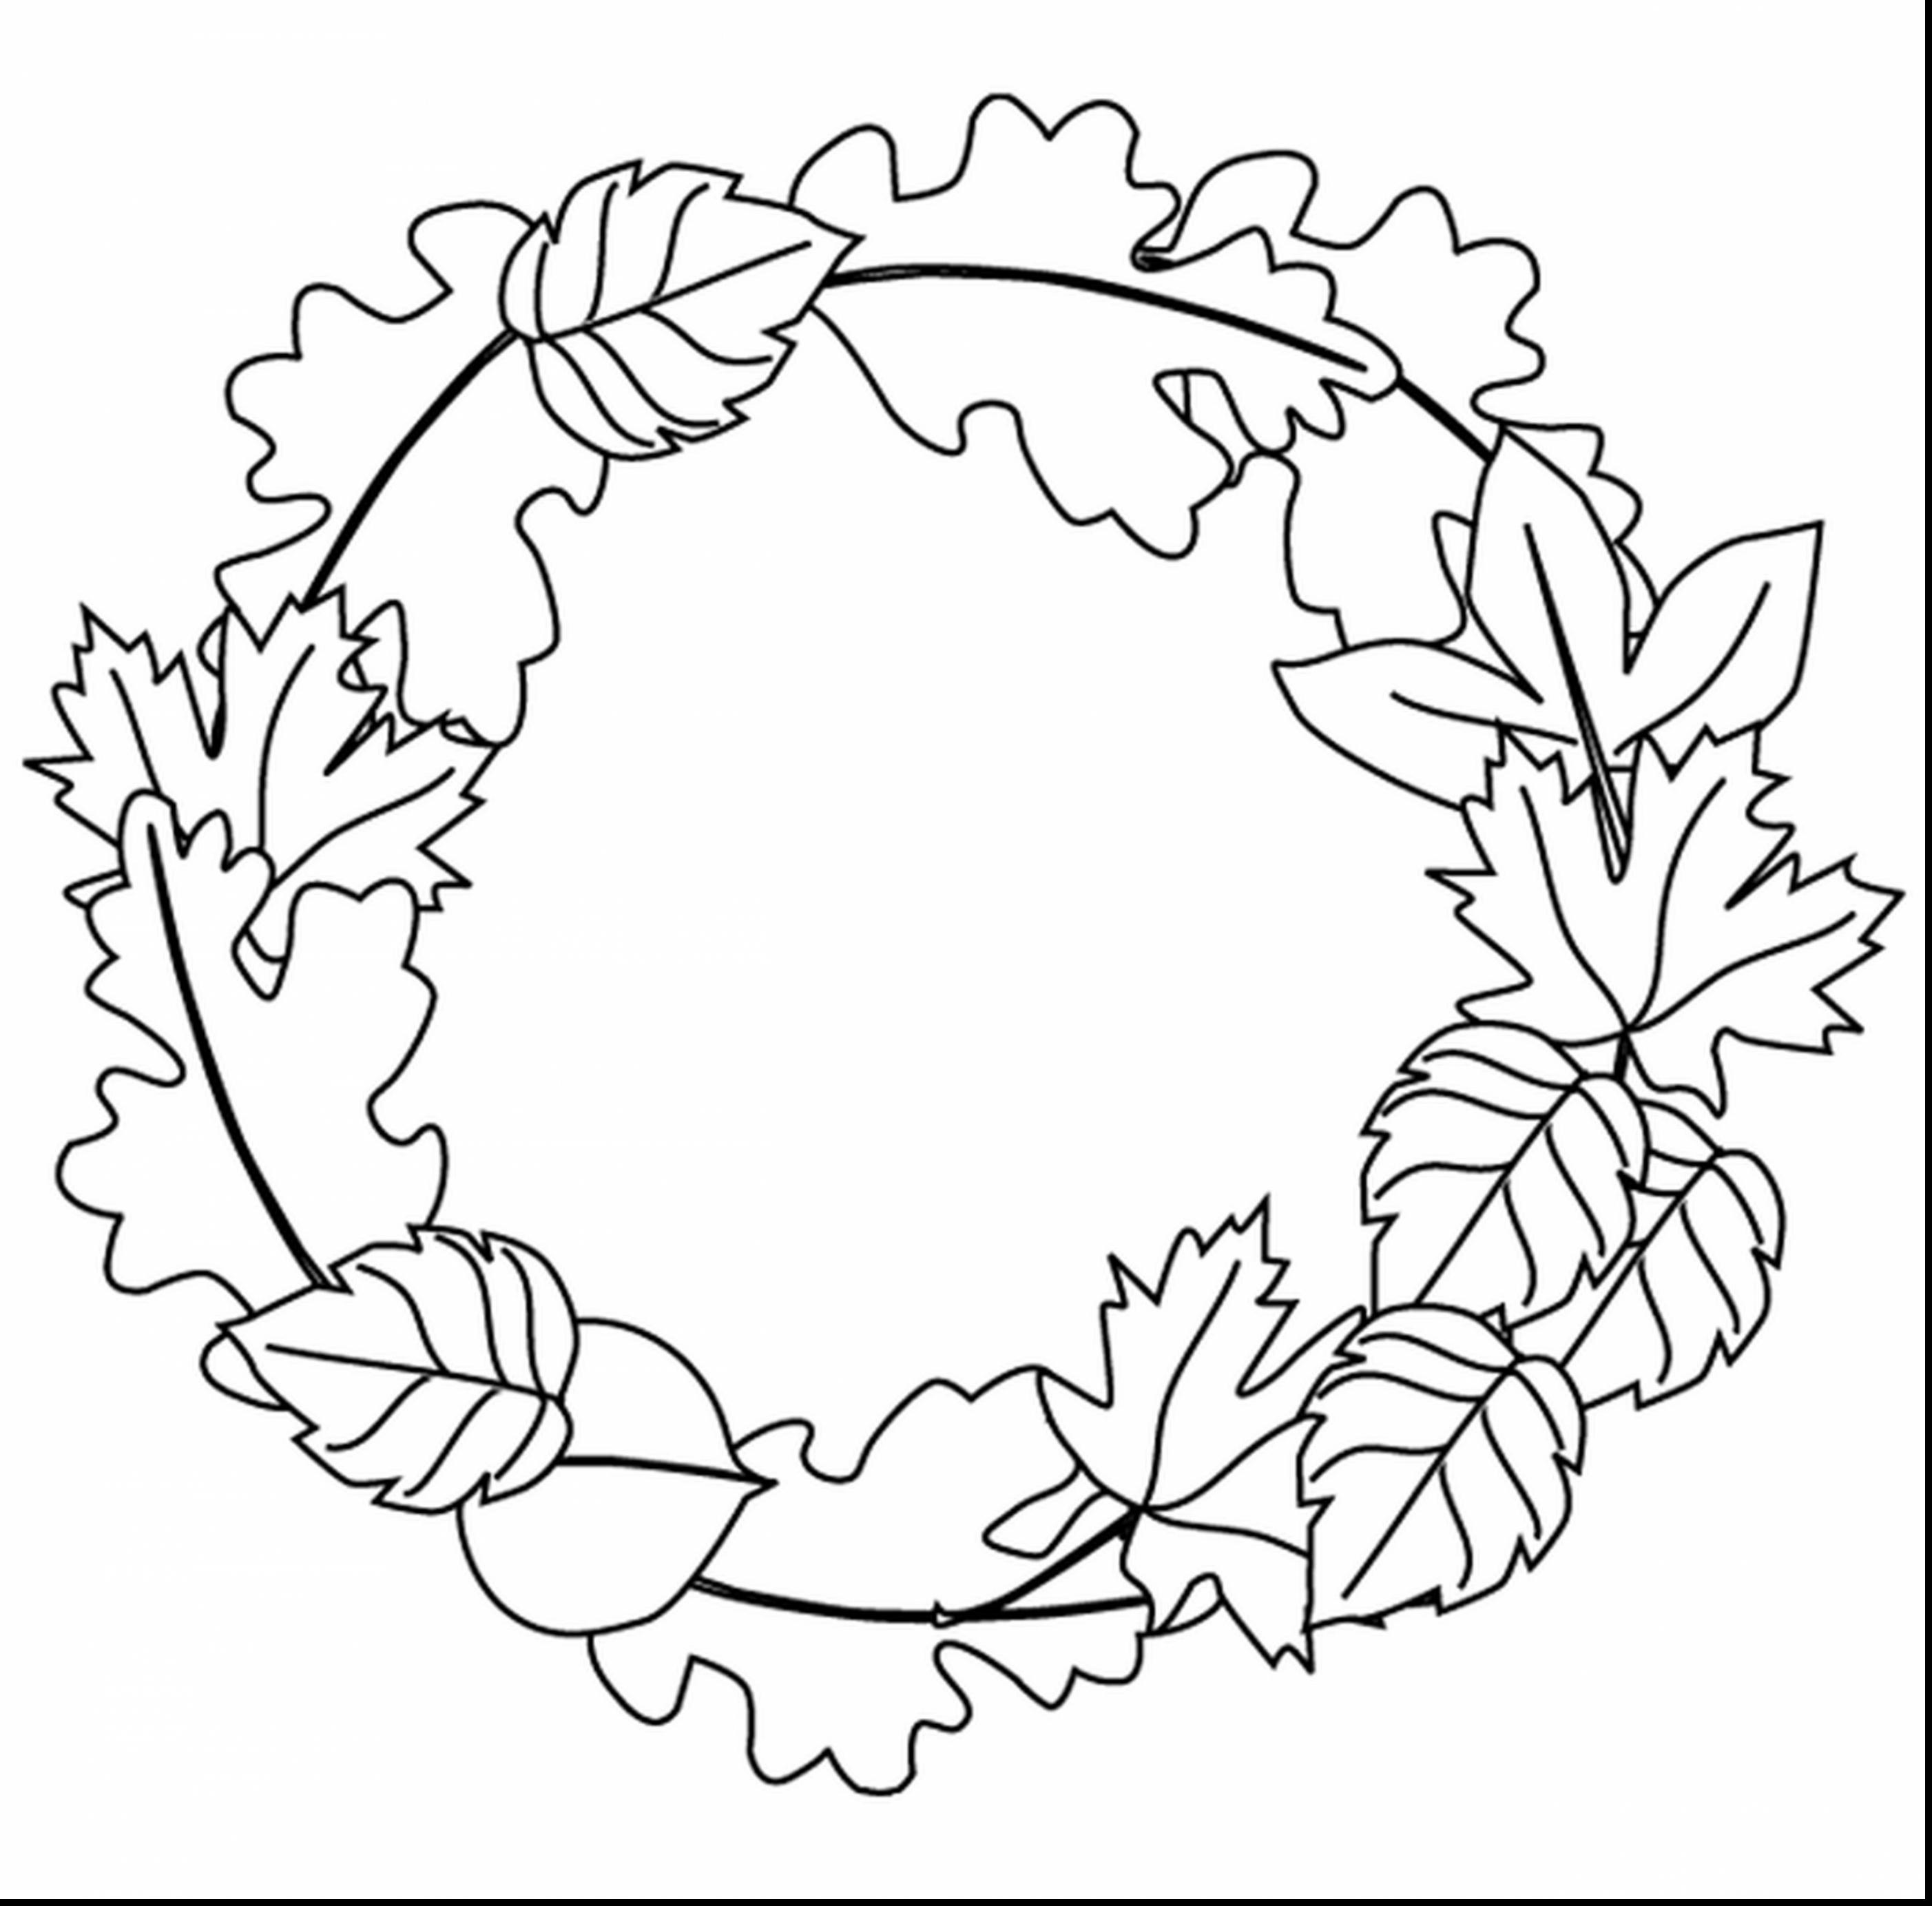 autumn leaves to color fall drawing pictures at getdrawings free download autumn leaves to color